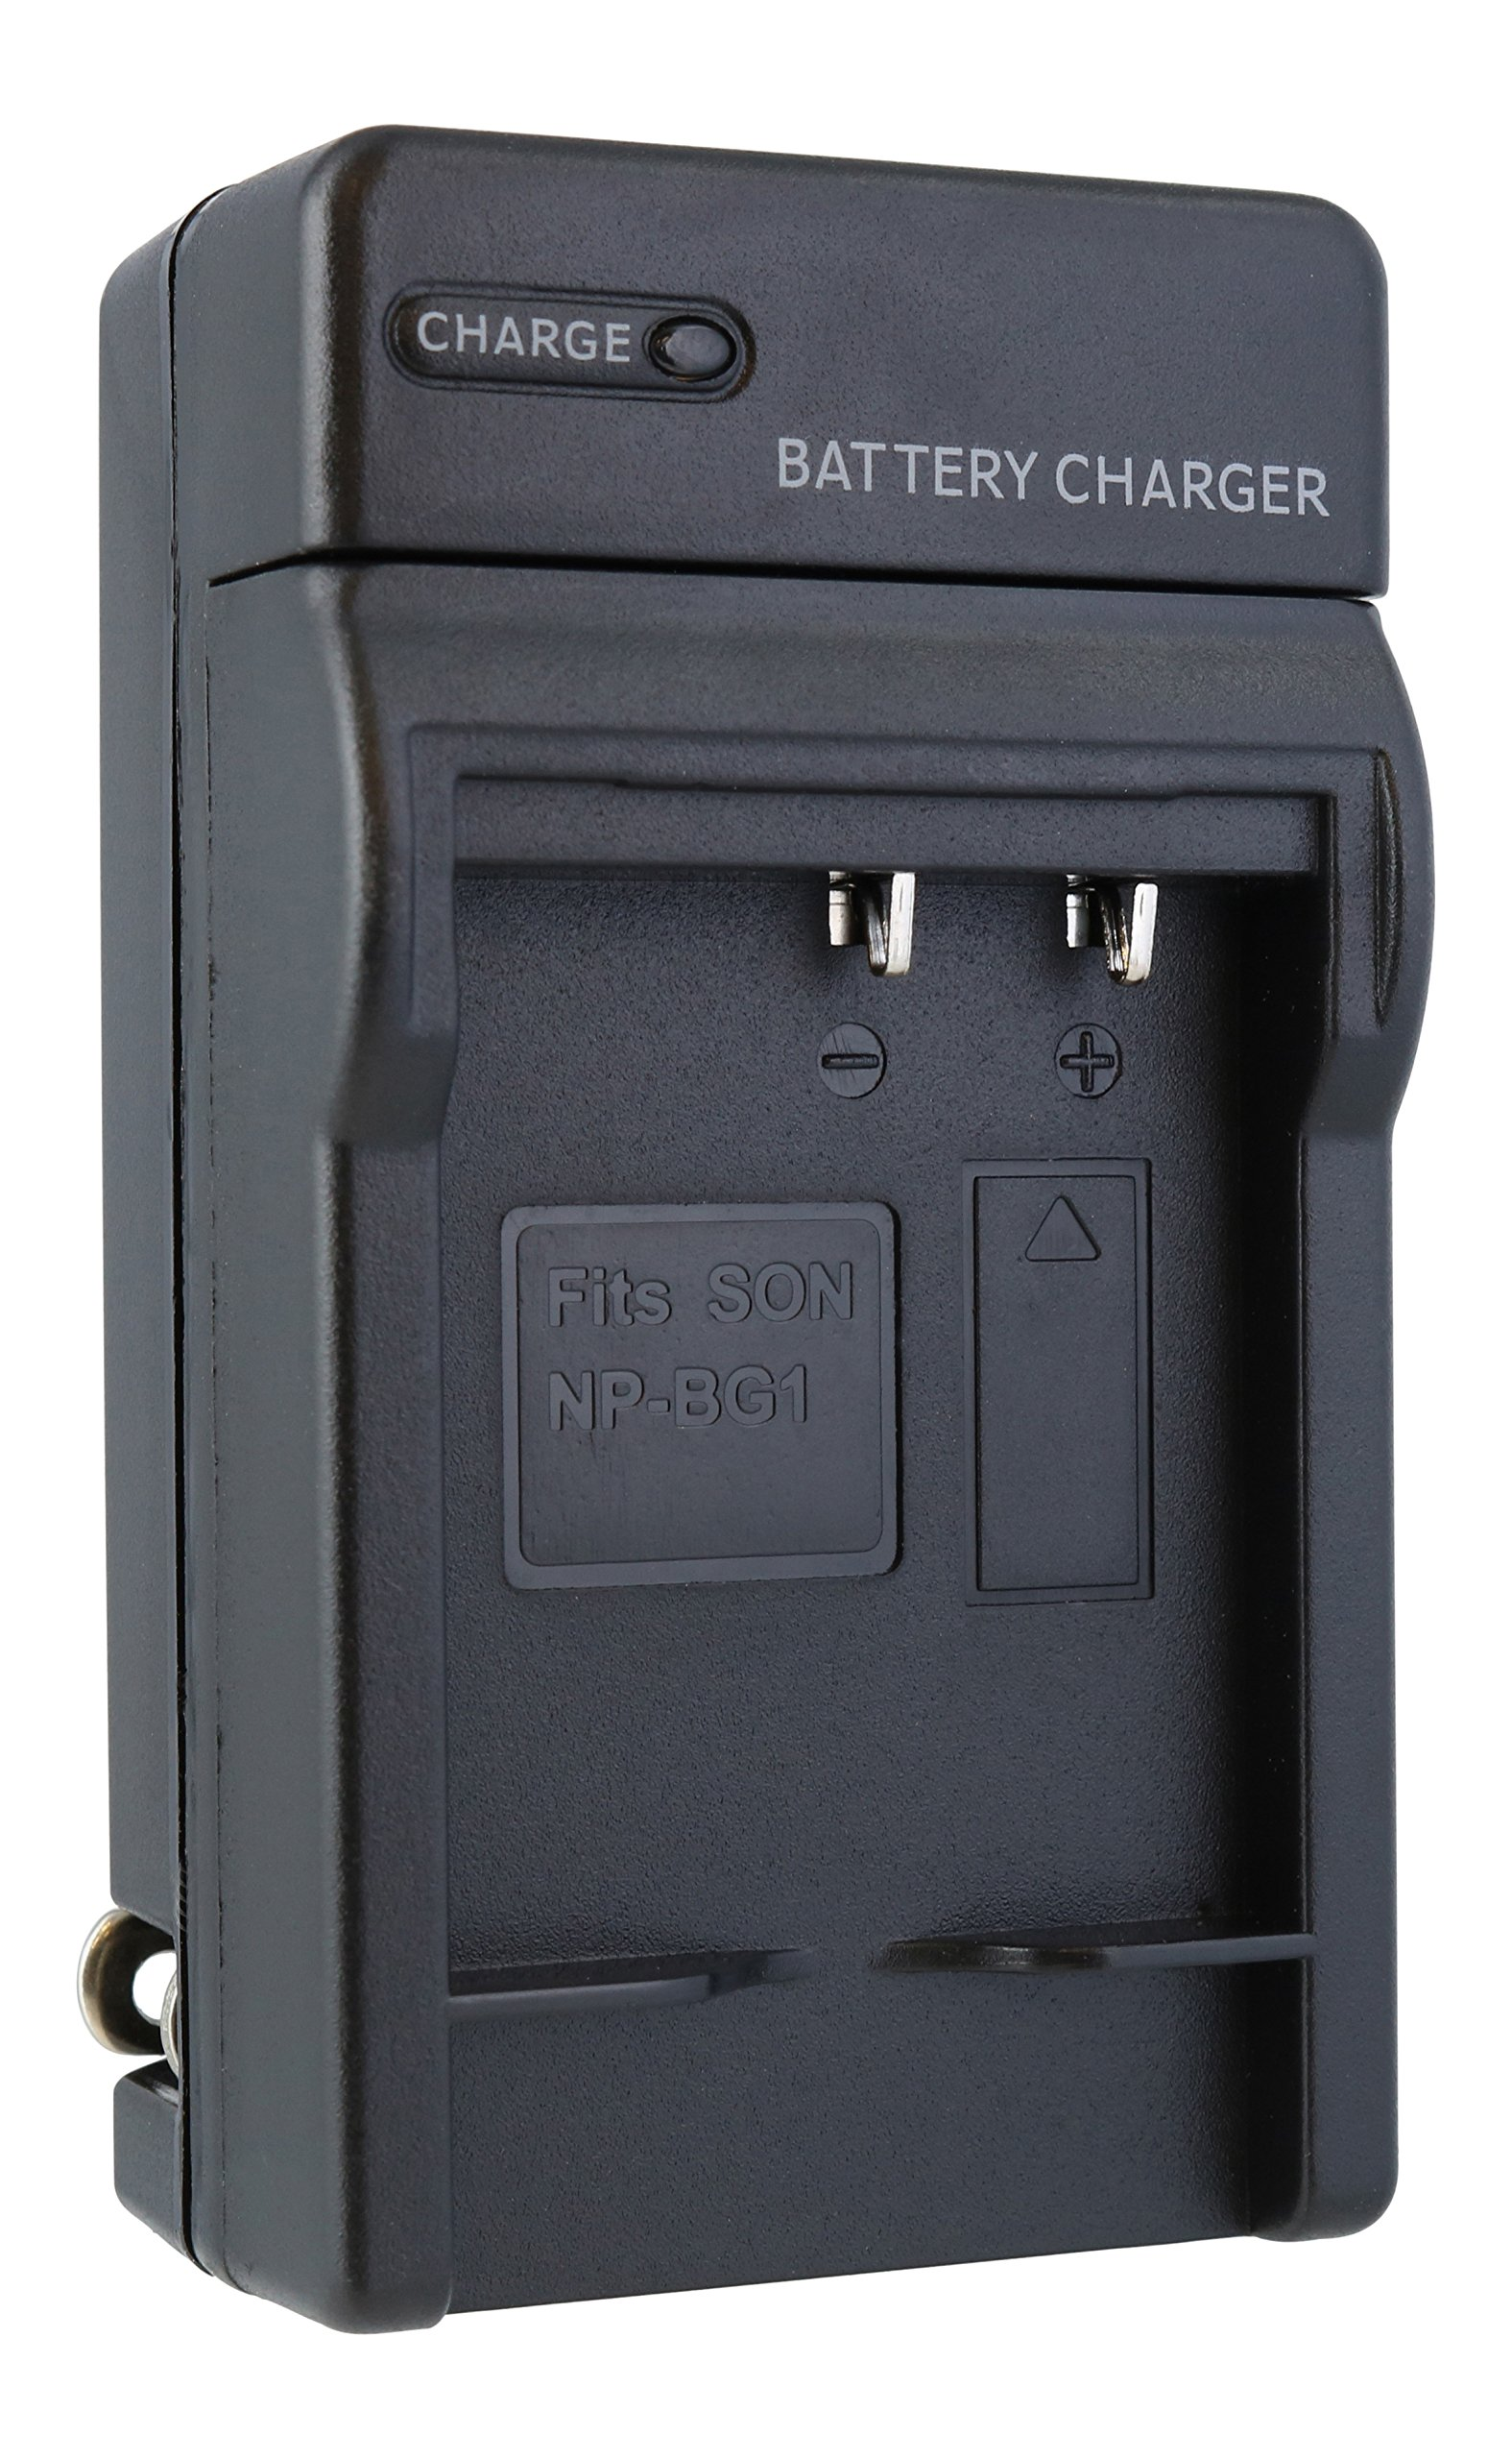 TechFuel Battery Charger Kit for Sony Cyber-shot DSC-HX7V Camera - For Home, Car and Travel Use